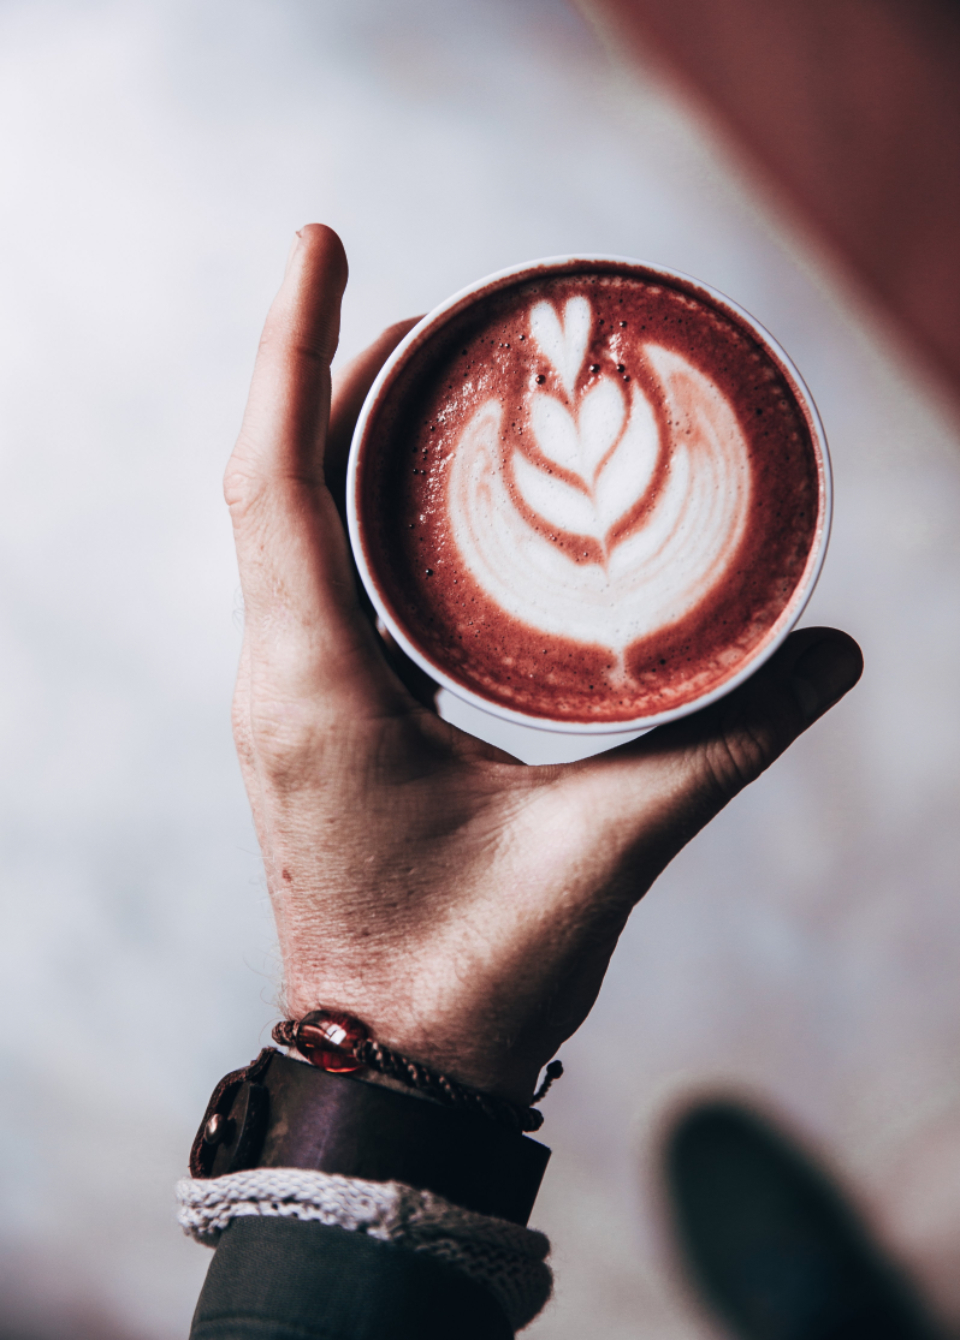 latte art hand close up drink beverage hot drink cappuccino coffee espresso cafe morning brewed milk design creative aroma caffeine restaurant holding person cream barista cup